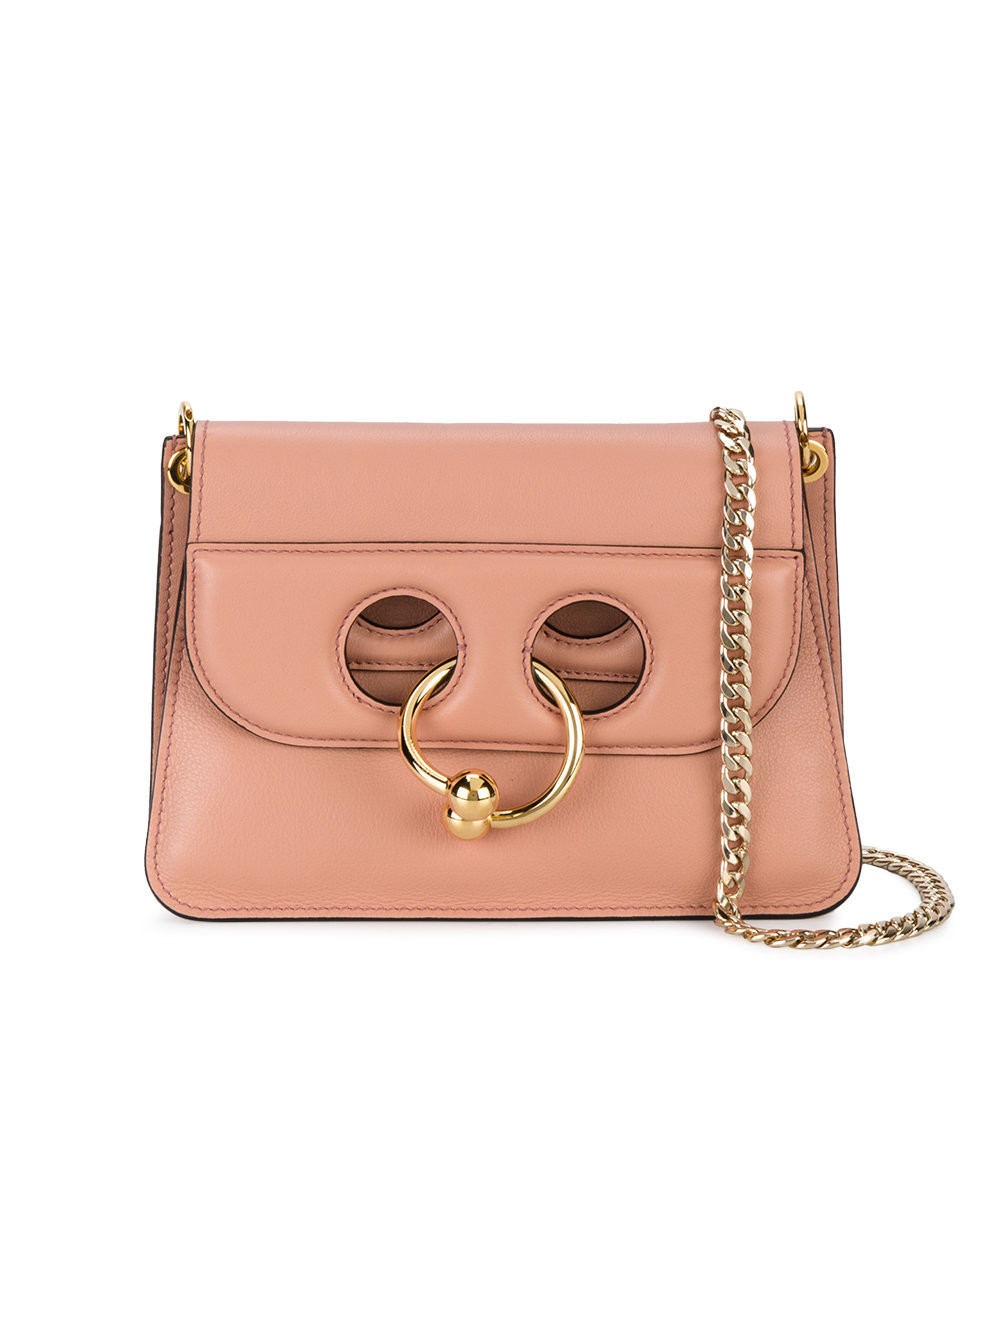 JW Anderson Leather Mini Taupe Pierce Messenger Bag in